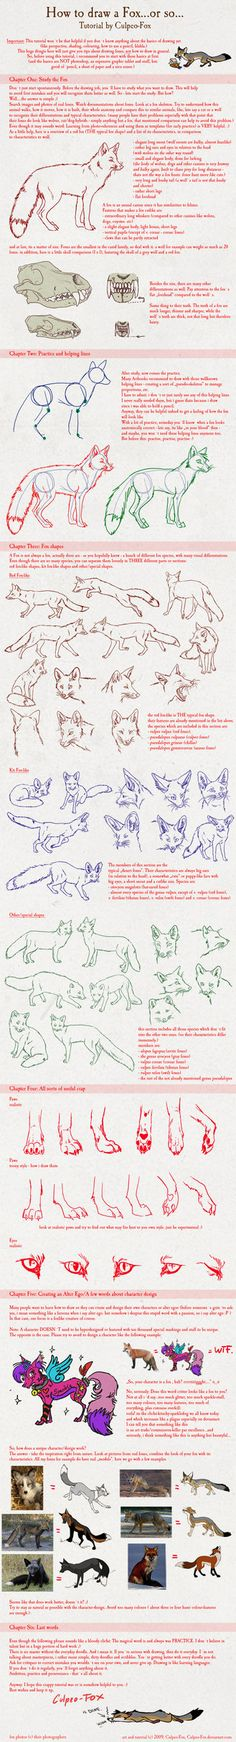 Fox drawing tutorial by Culpeo-Fox via deviantart for paige Doodle Drawing, Fox Drawing, Anatomy Reference, Drawing Reference, Drawing Techniques, Drawing Tips, Fox Art, Character Design References, Learn To Draw